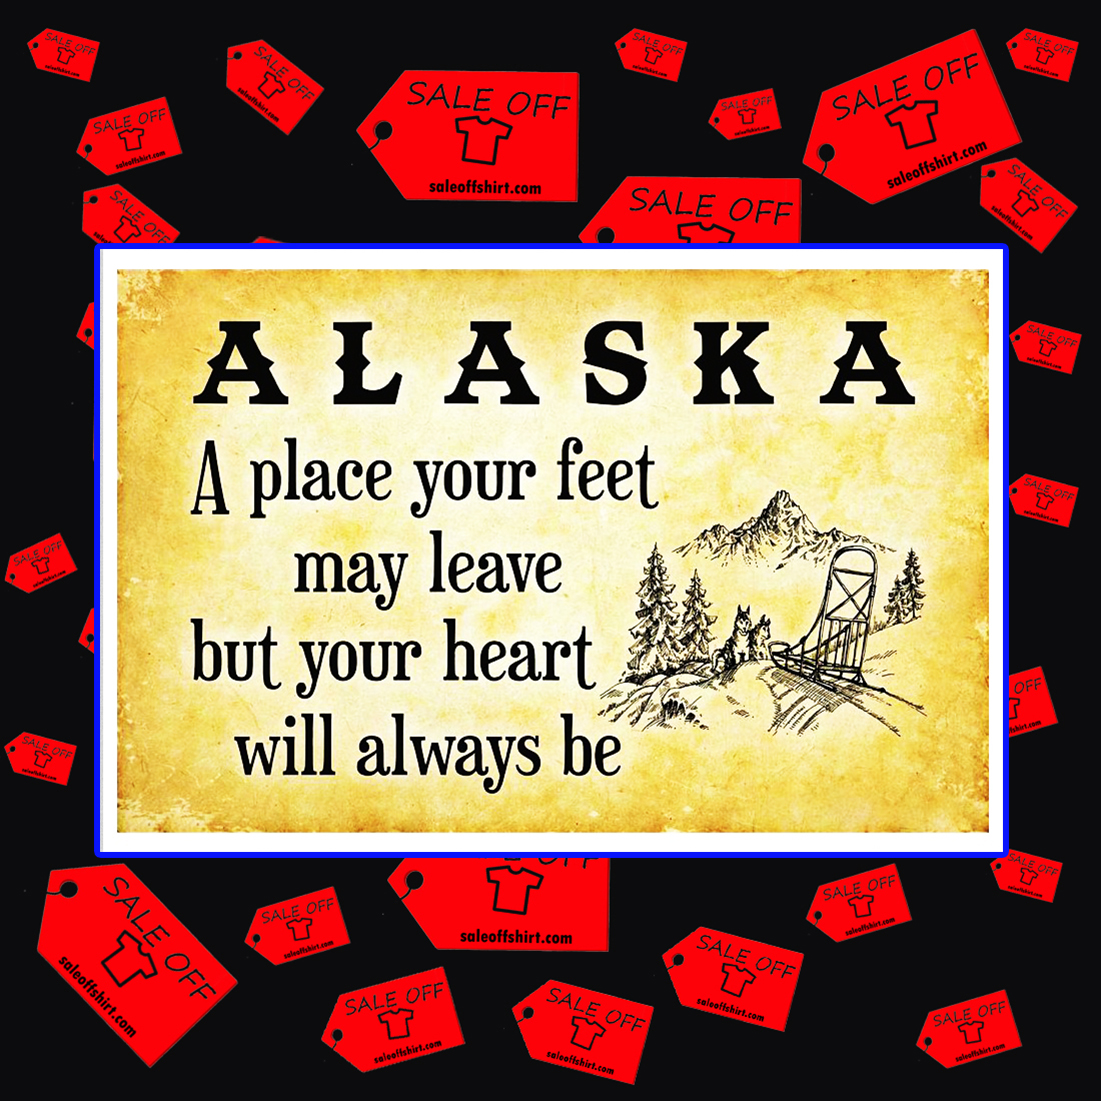 Alaska a place your feet may leave but your heart will always be poster 24x16